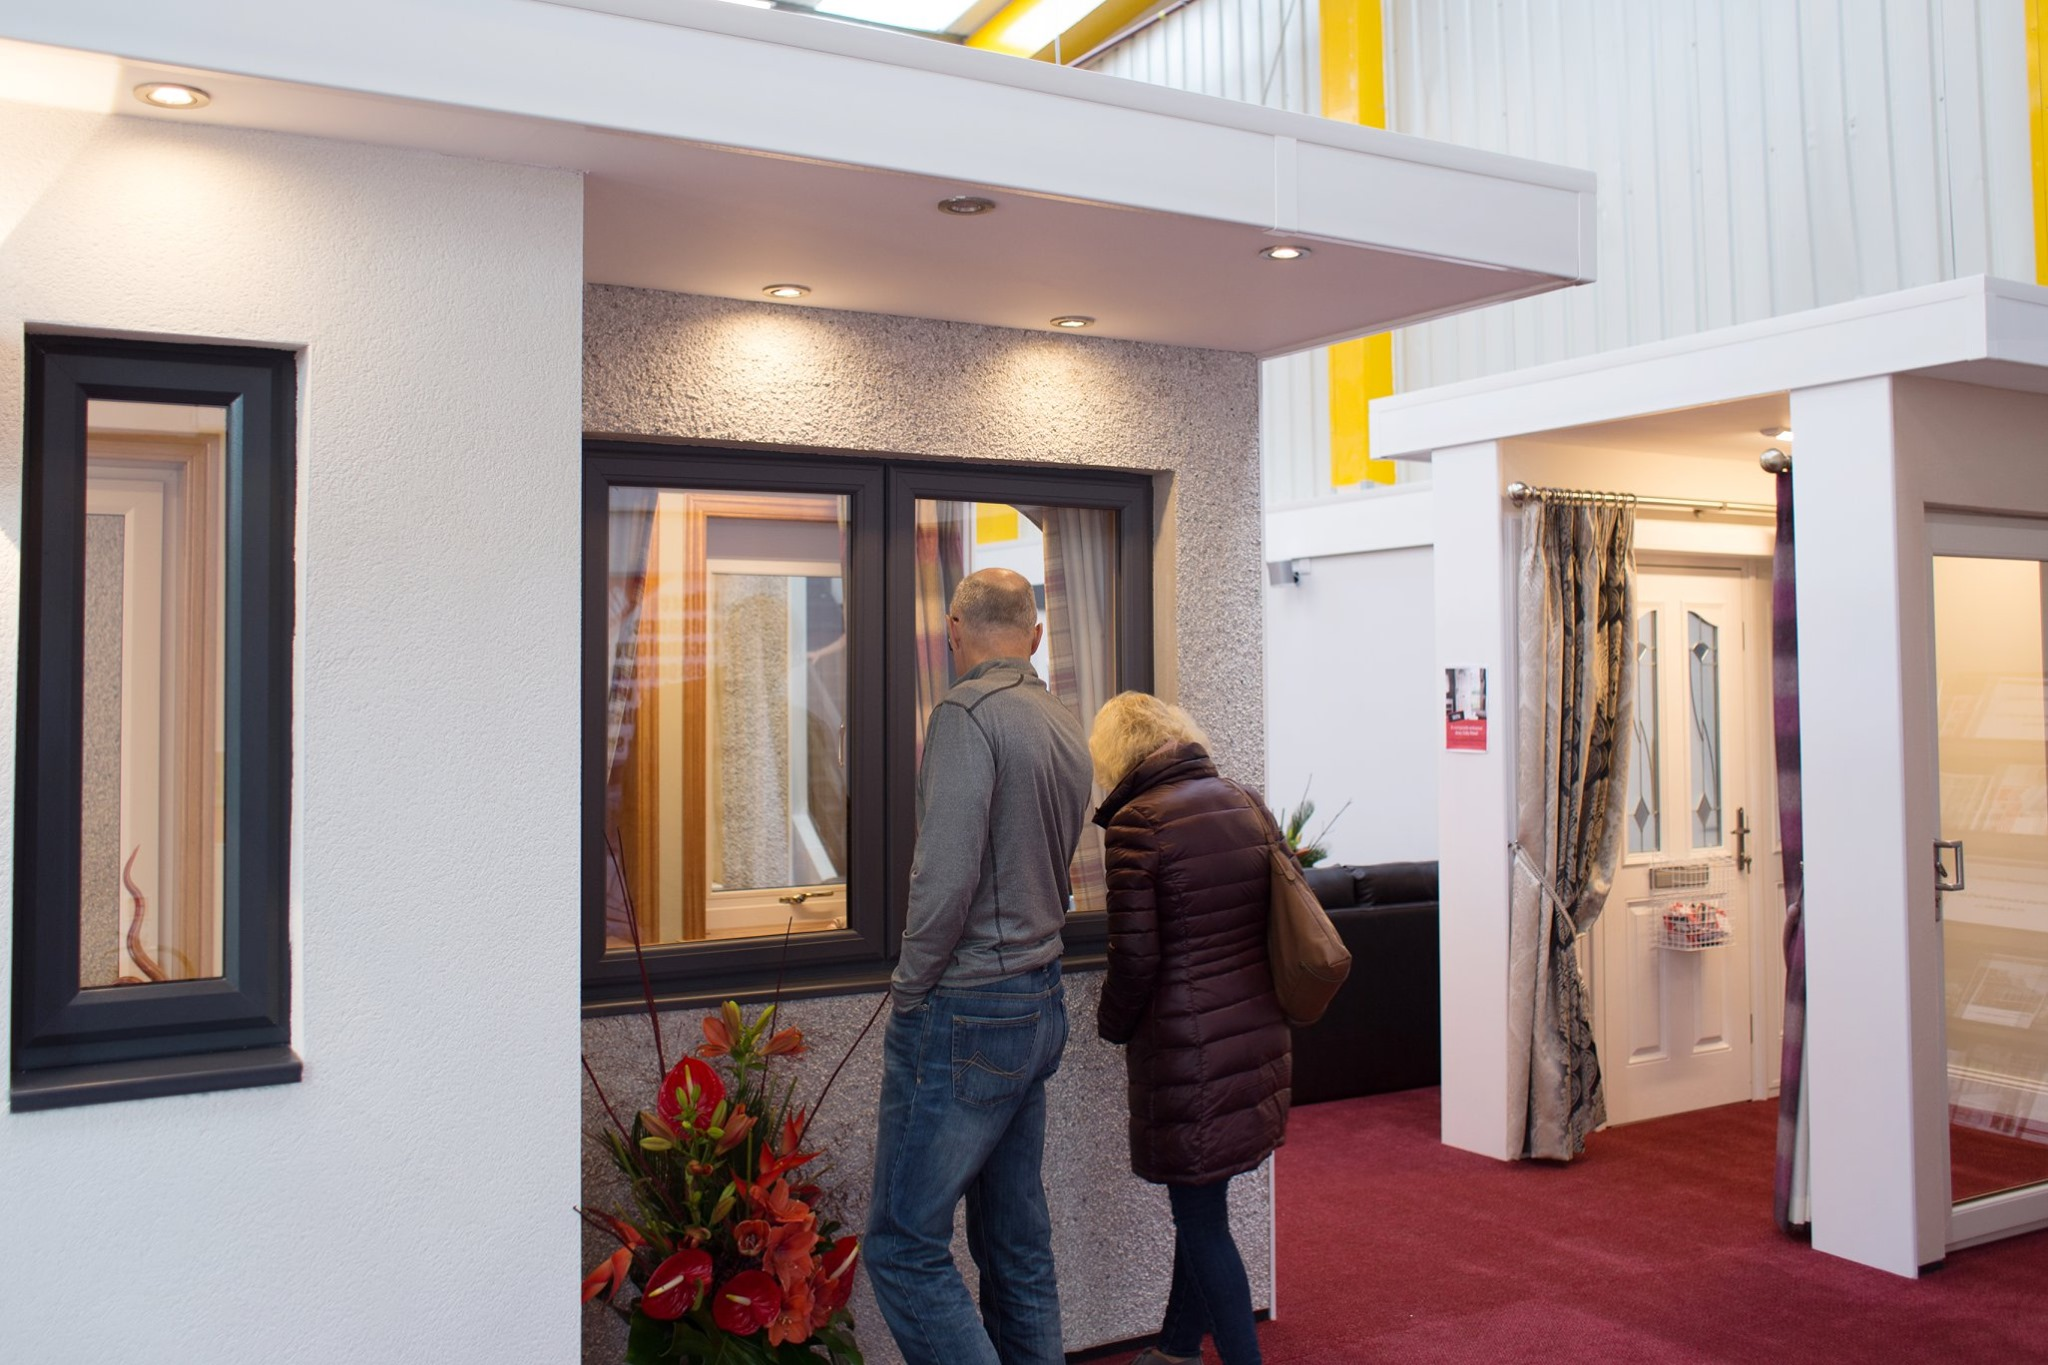 ????That's our first week of being open almost complete and we would like to take this opportunity to thank everyone that has visited our showrooms in Perth, Dundee & Edinburgh - it has been lovely to see you all. ???? https://t.co/dFgYqpgqfk